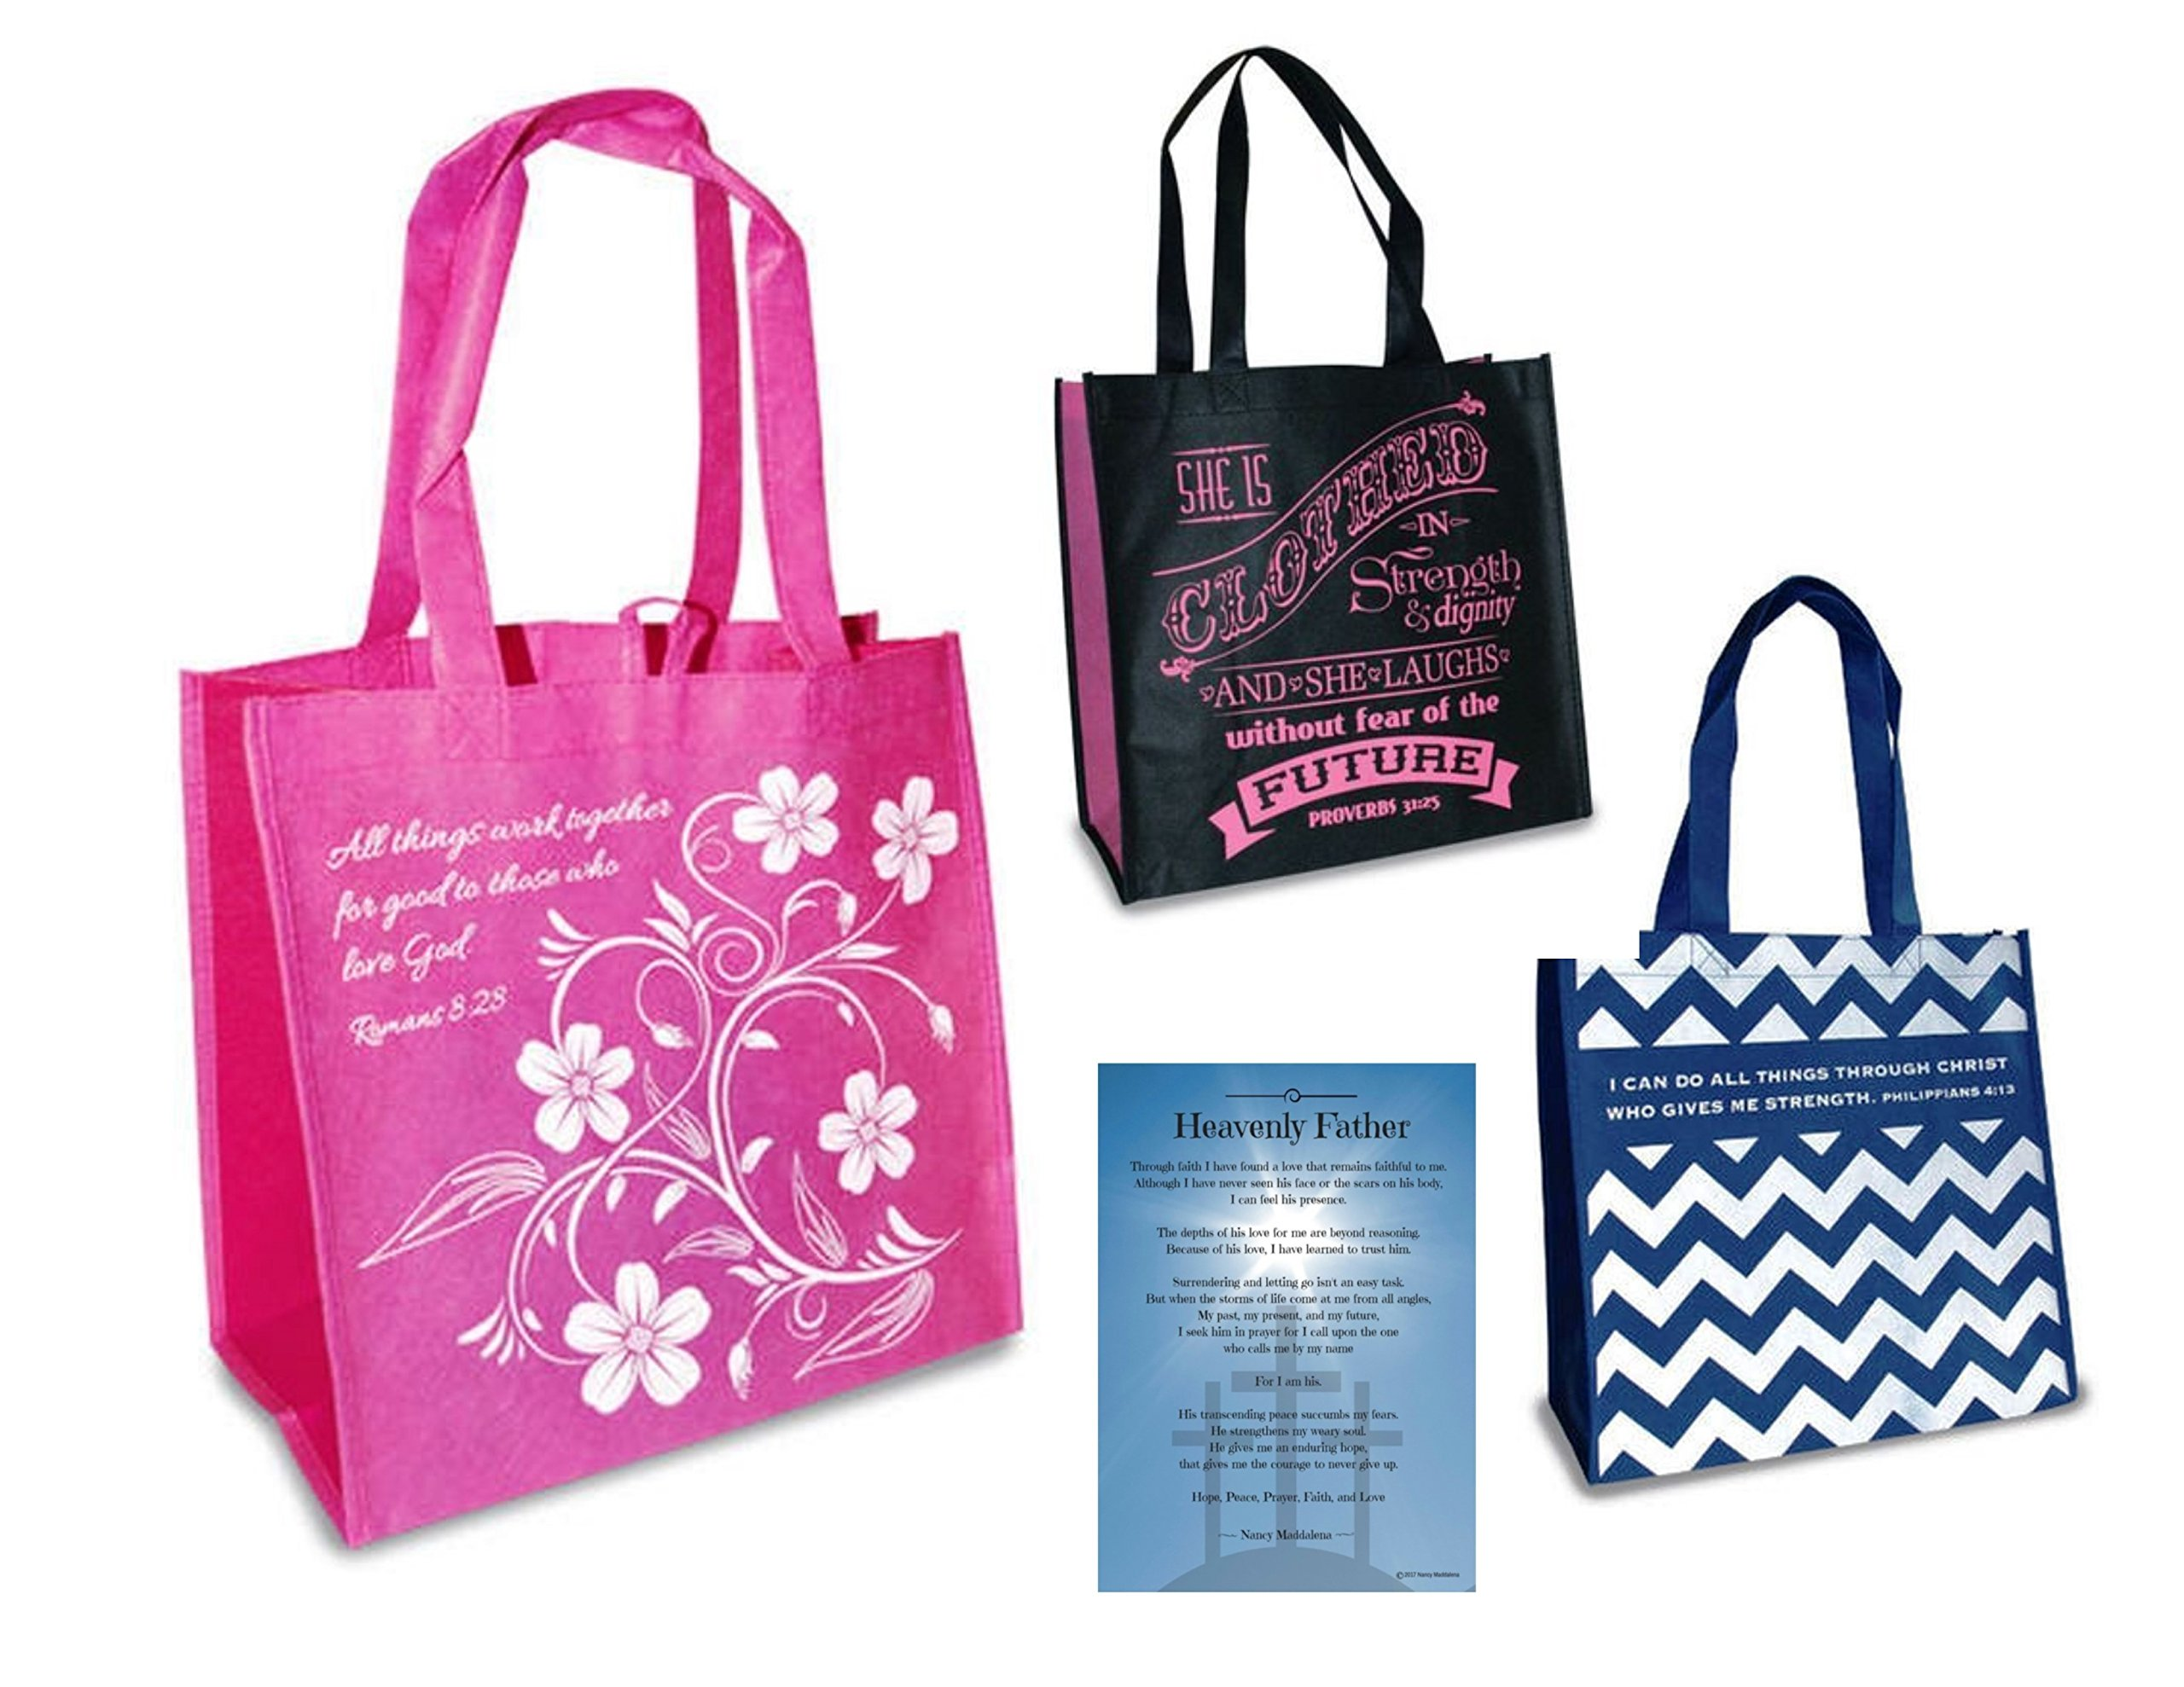 Lightdog Unlimited Christian Religious Message Reusable Bag Bundle #1, Eco Friendly, 12 x 12 (3 Pack) Tote Bags